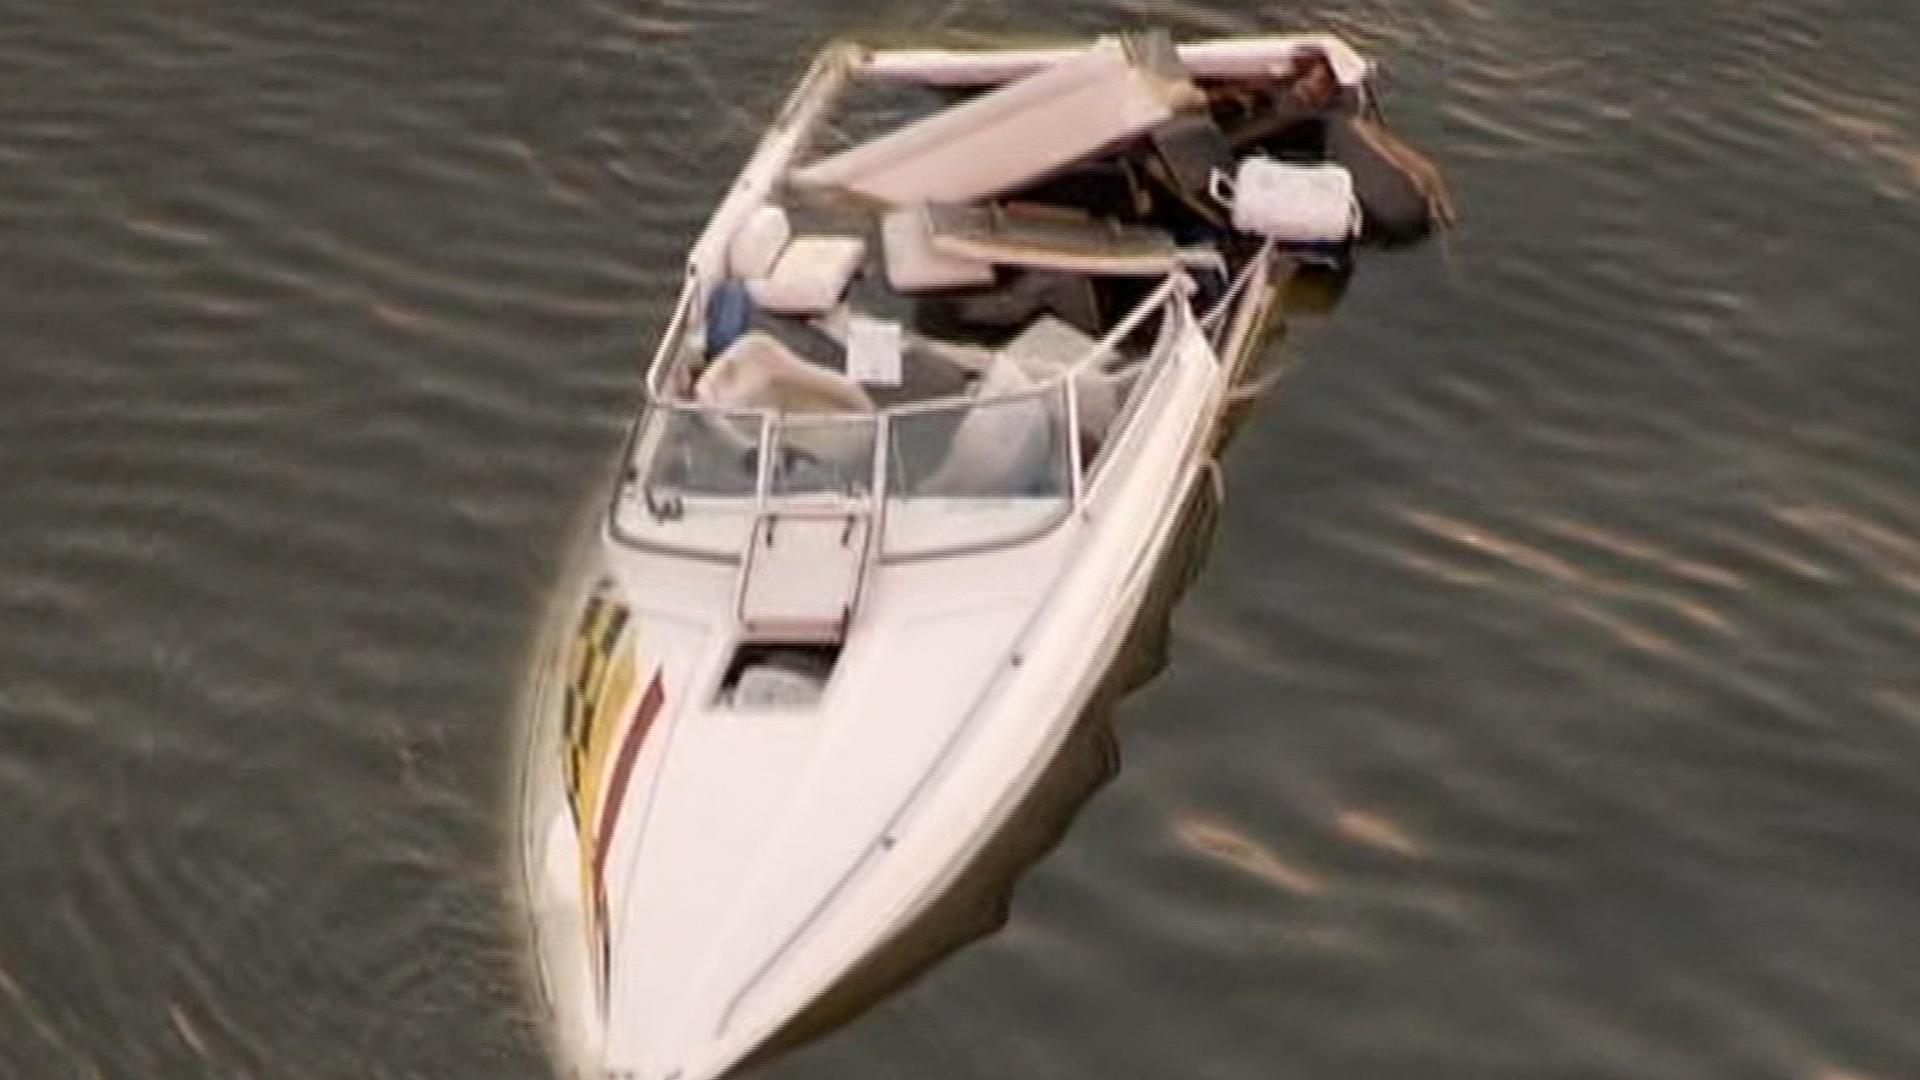 speedboat driver could face more charges in crash that killed